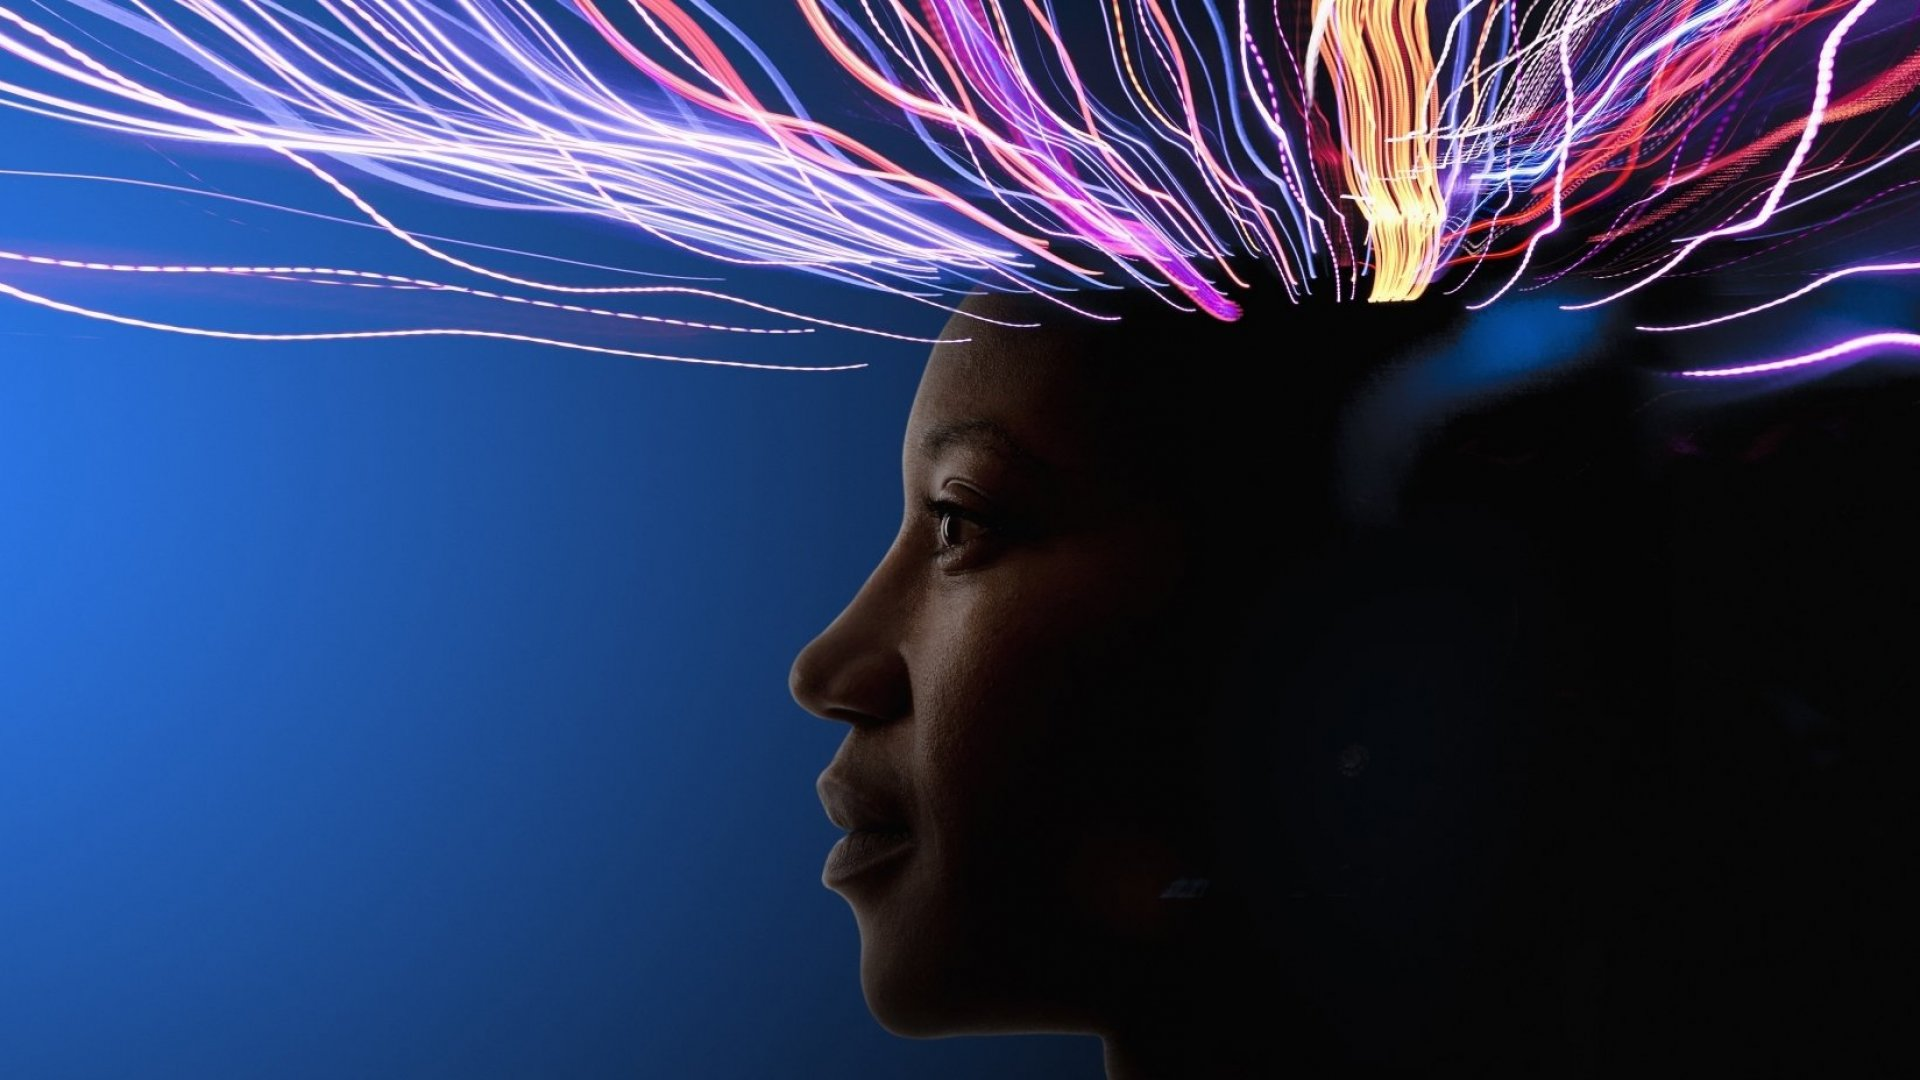 5 Mental Habits That Will Make You Much Smarter, According to an MIT Neuroscientist